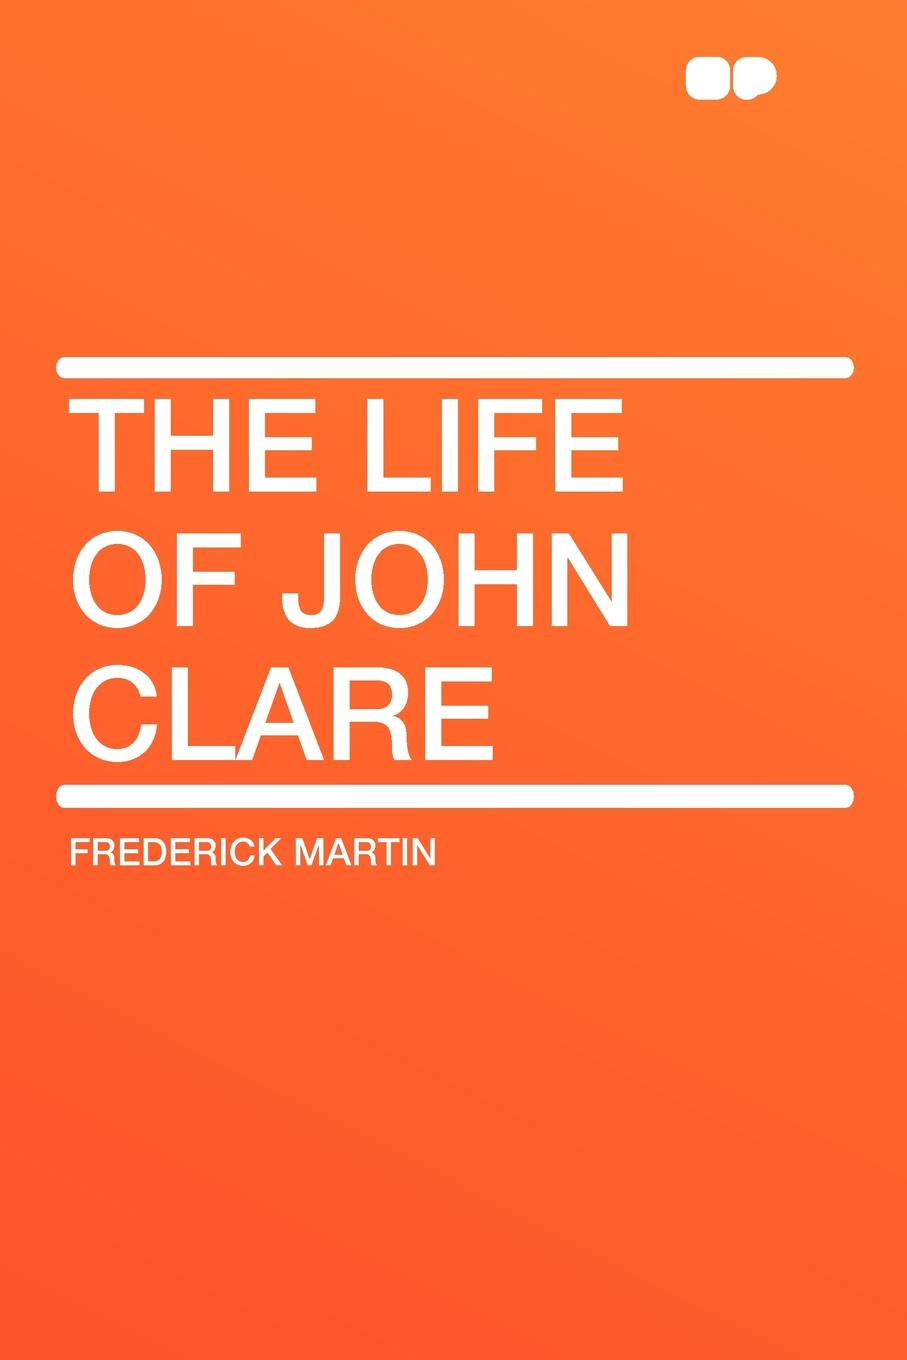 Frederick Martin The Life of John Clare